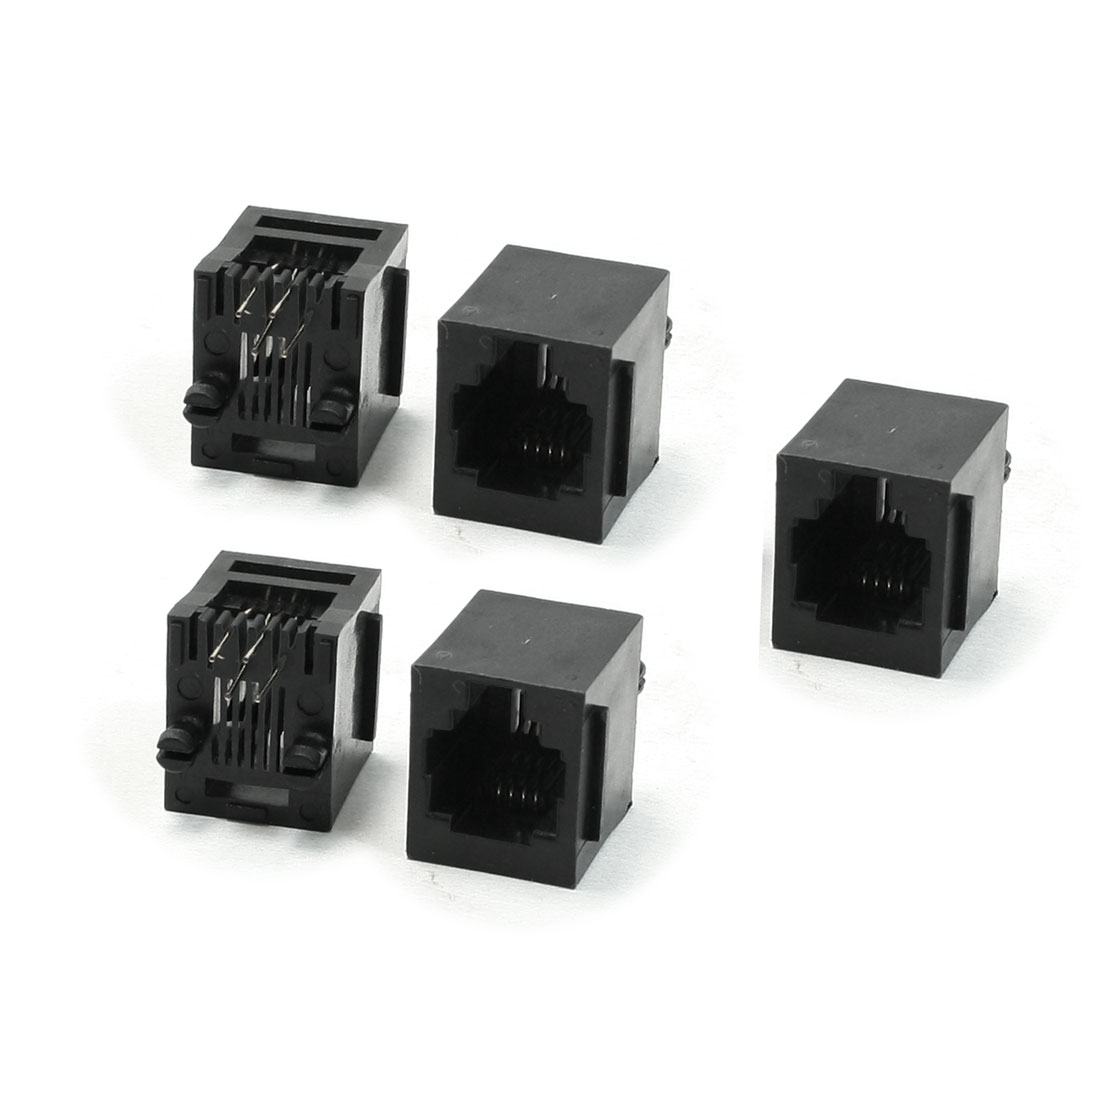 5 Pcs 0 Degree Pins RJ11 RJ13 RJ14 6P4C Telephone Jacks Sockets